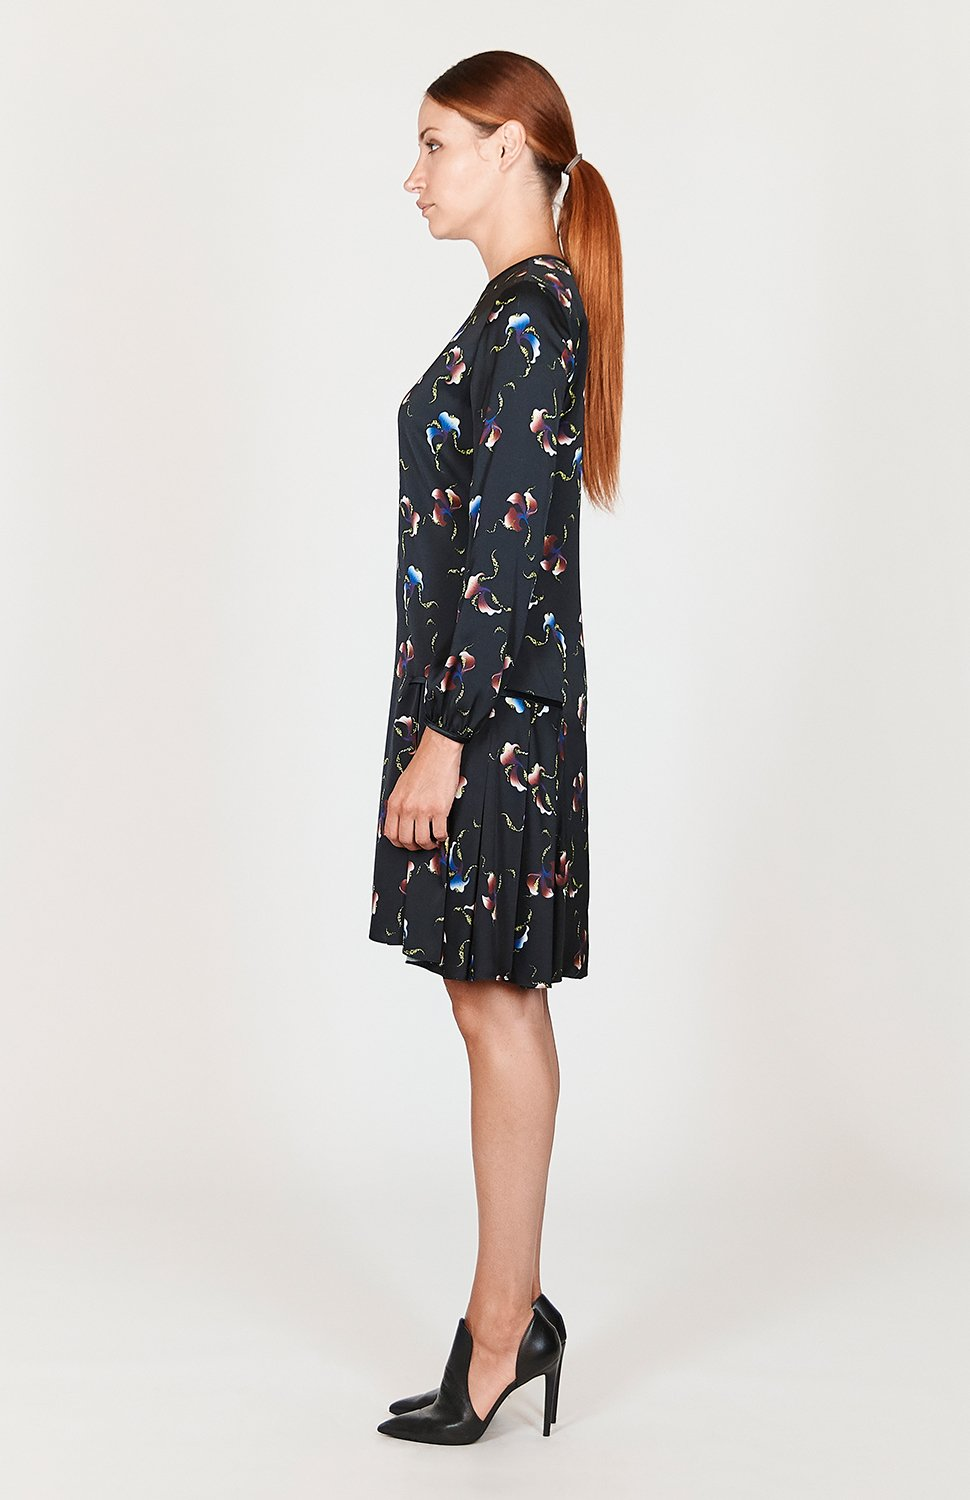 Mi Jong Lee Micro Flora Side Pleated Dress - Capsule 1